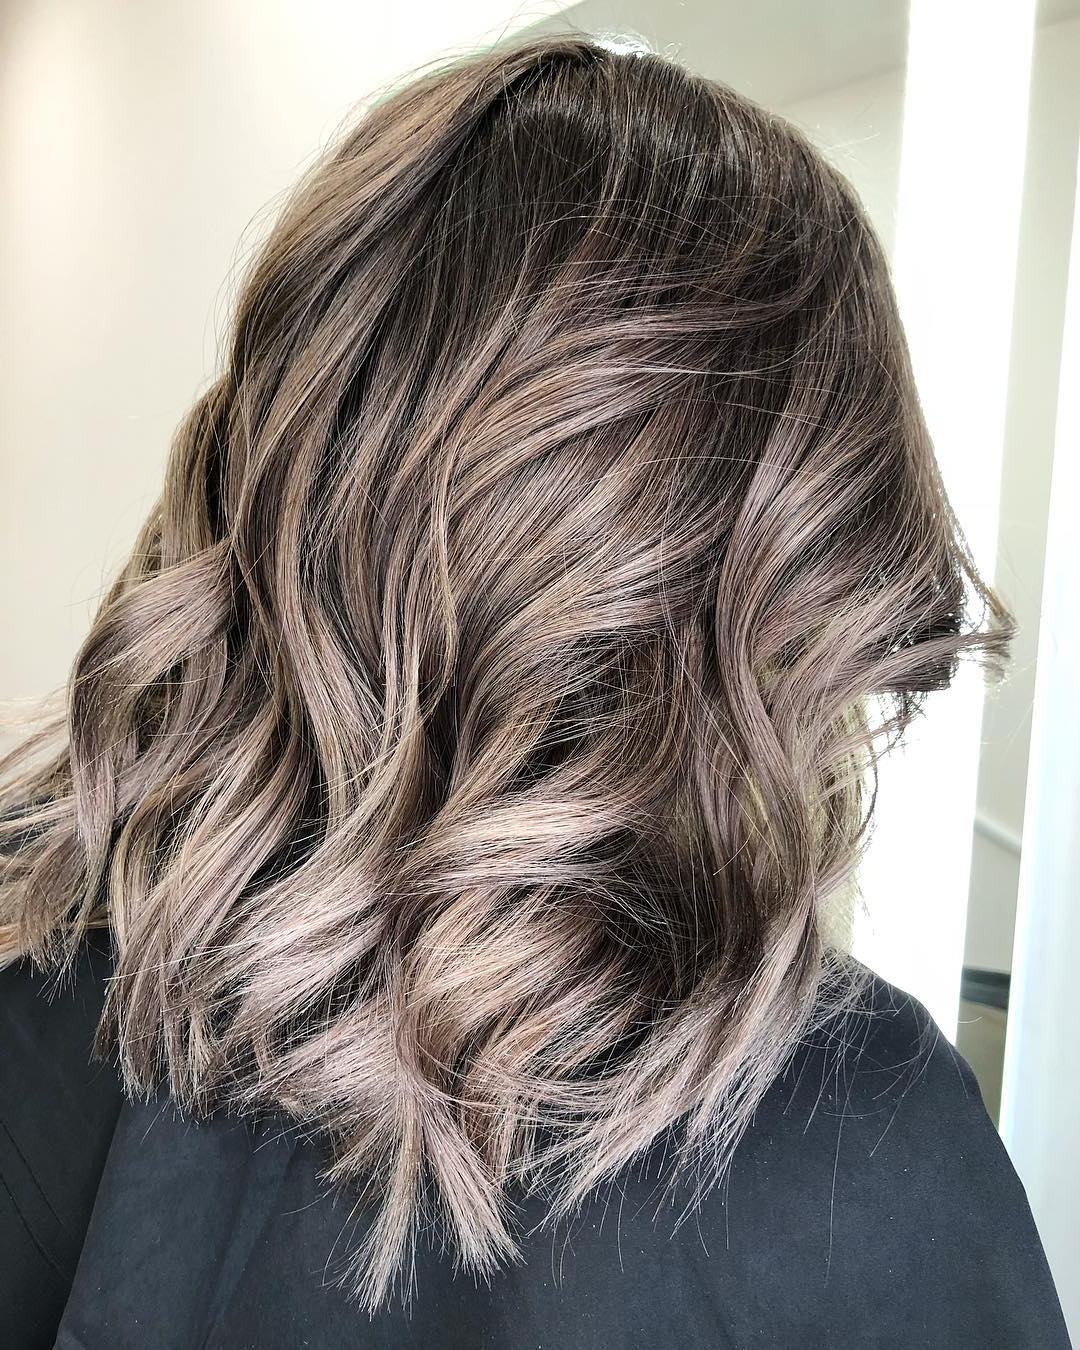 Fashionable Textured Shag Haircuts With Warm Brown Balayage In 10 Balayage Hair Styles For Medium Length Hair (View 7 of 20)